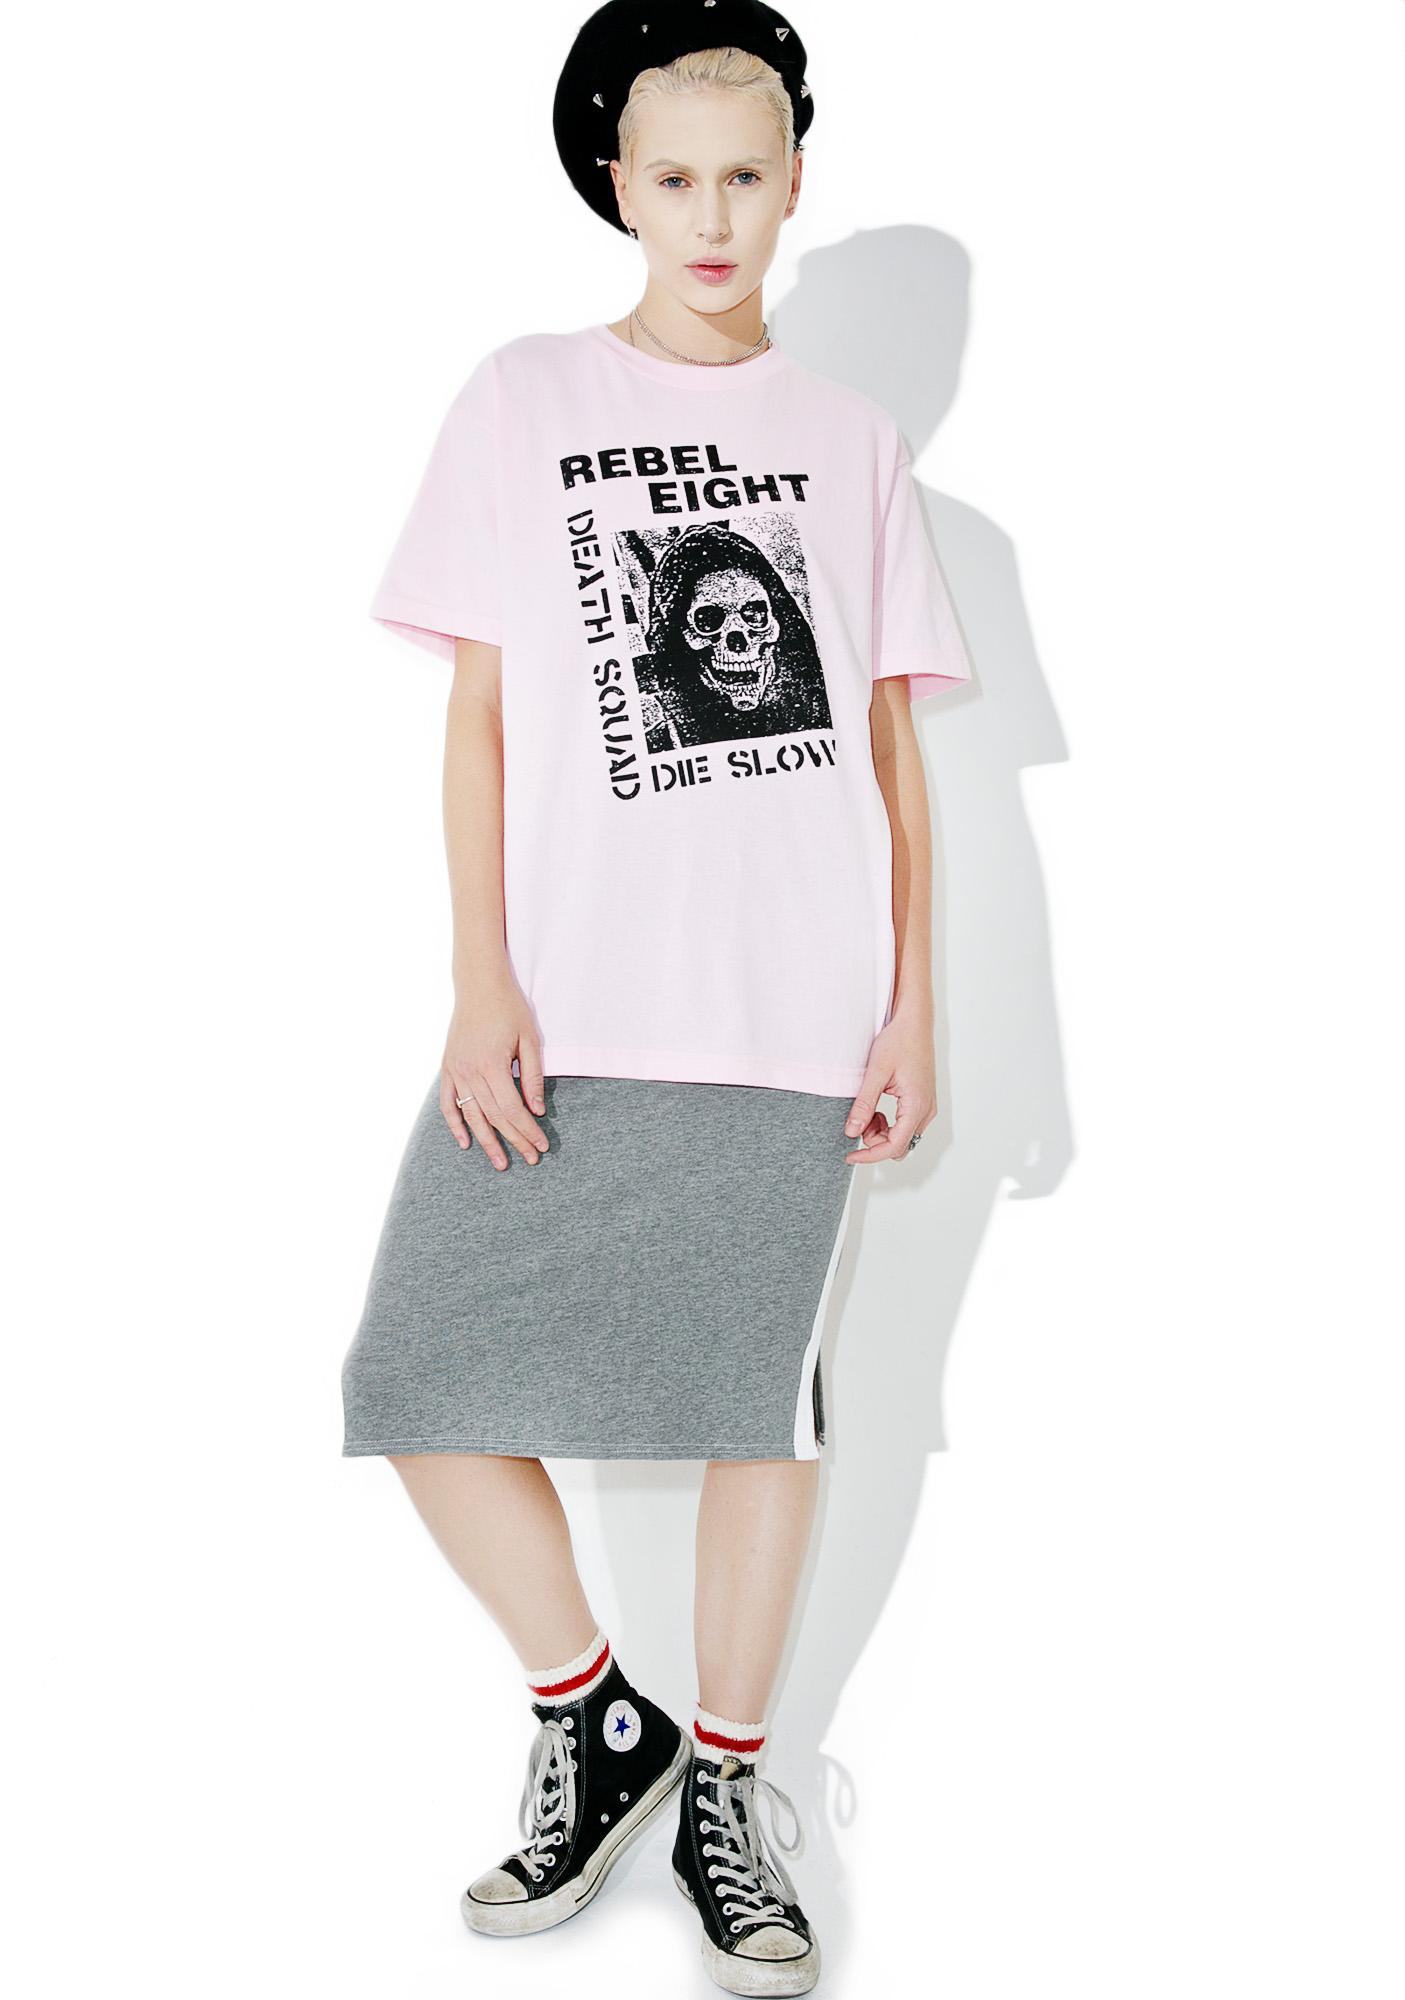 Rebel8 Downfall Tee